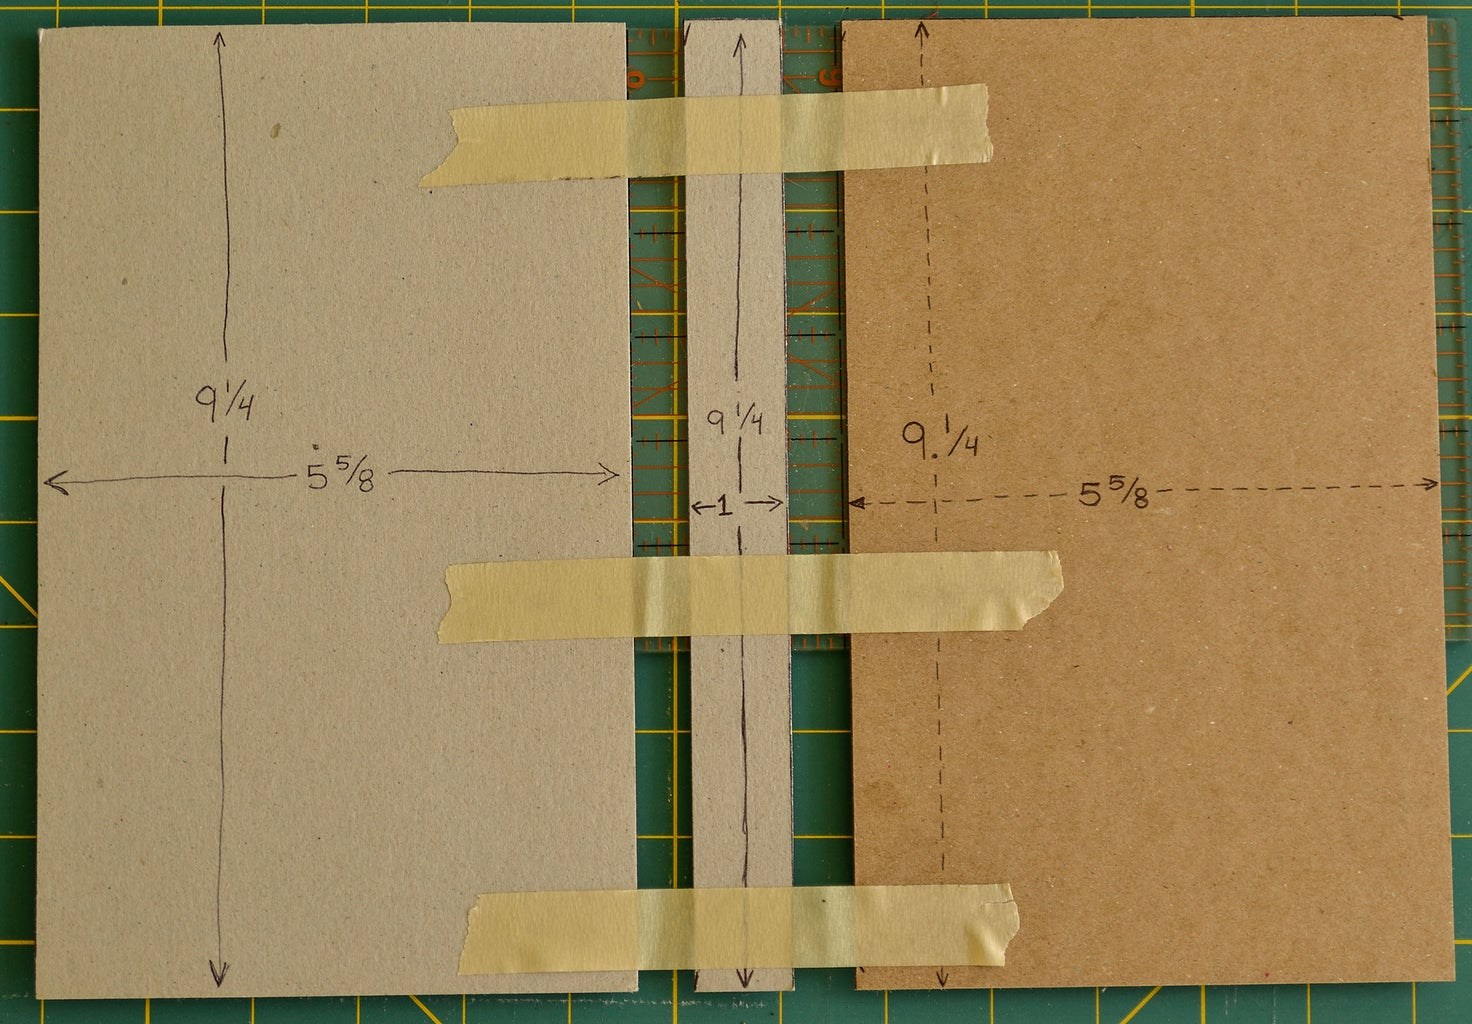 Align Cardboard With Masking Tape